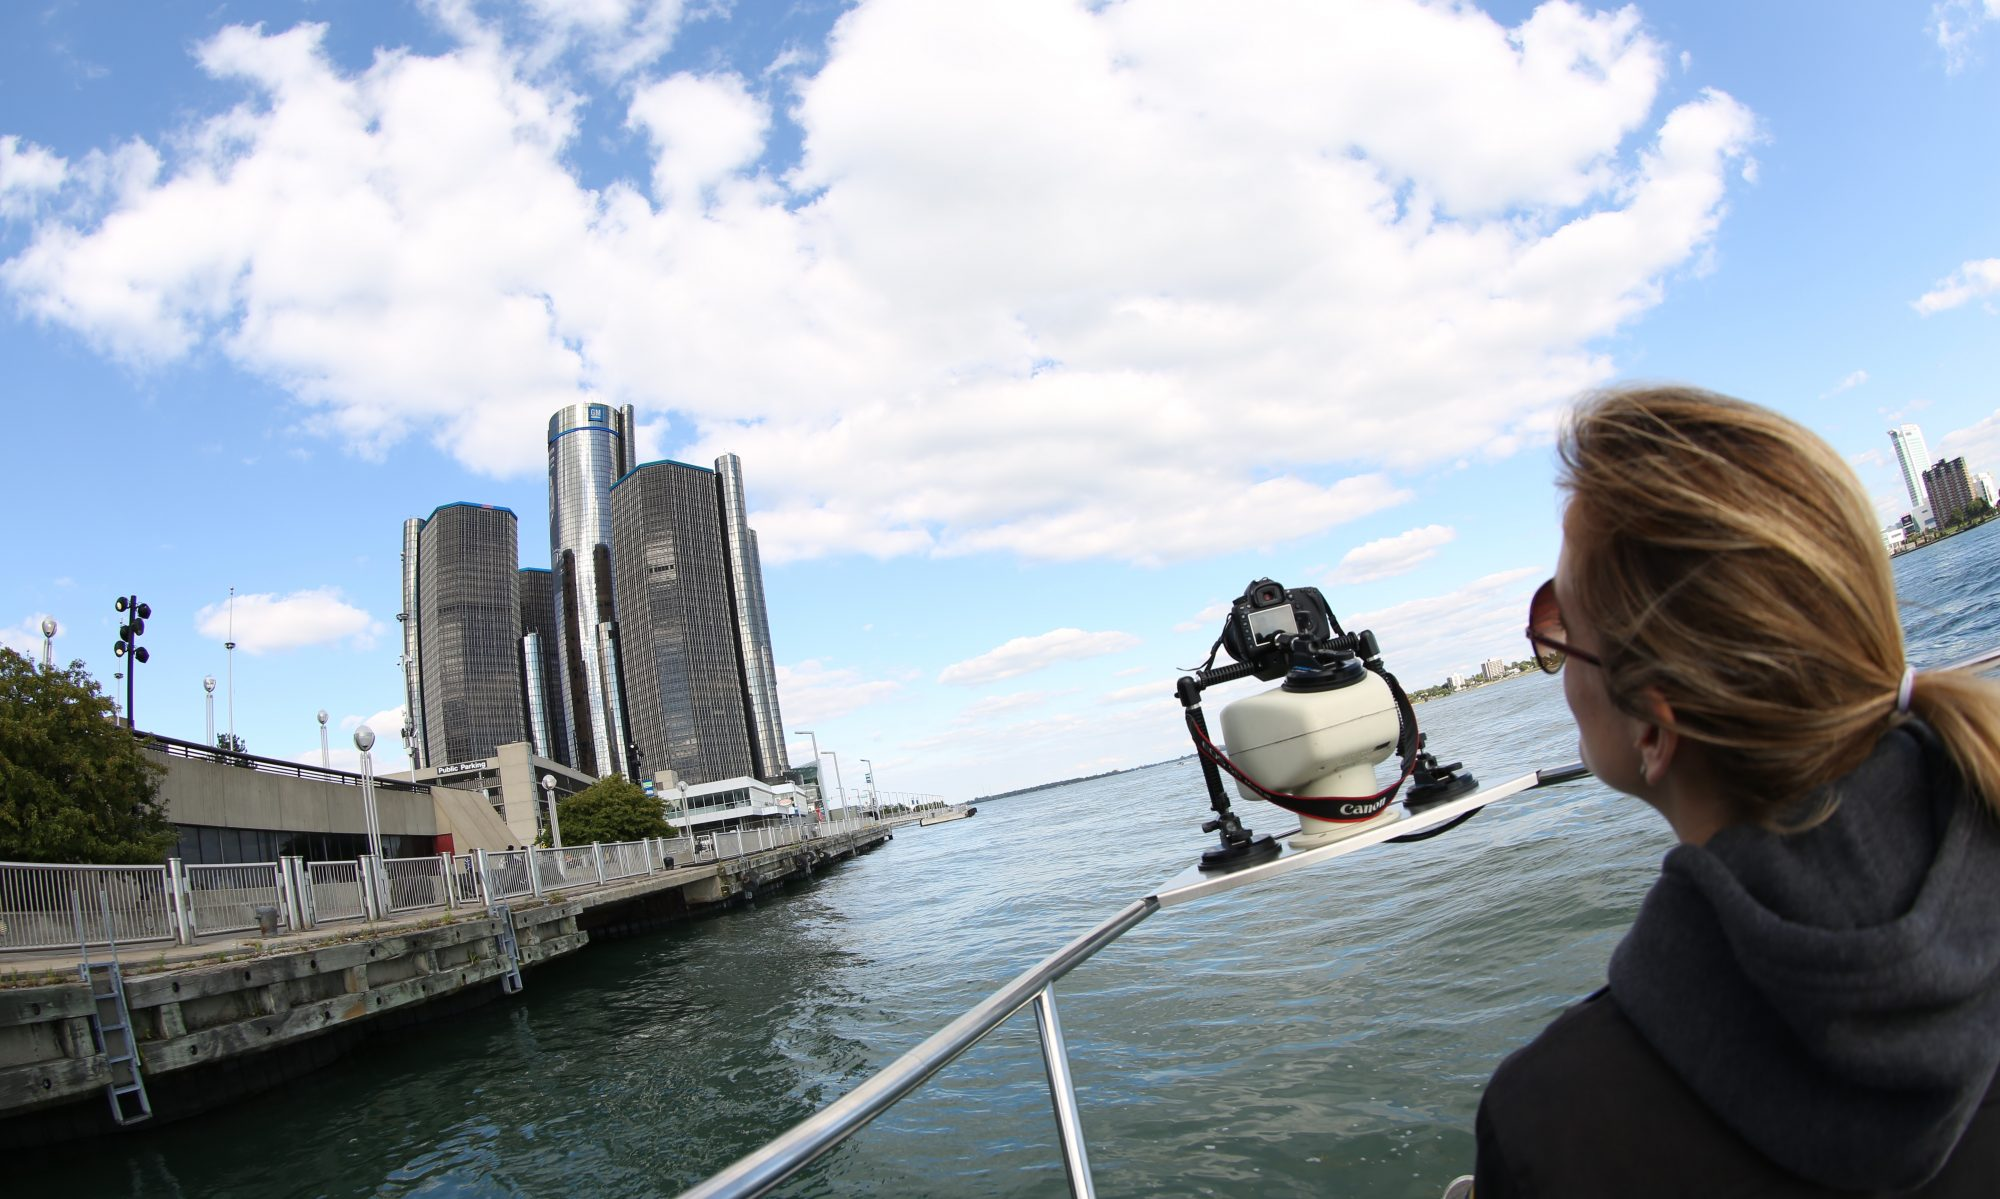 Clearwater: Detroit's River revival